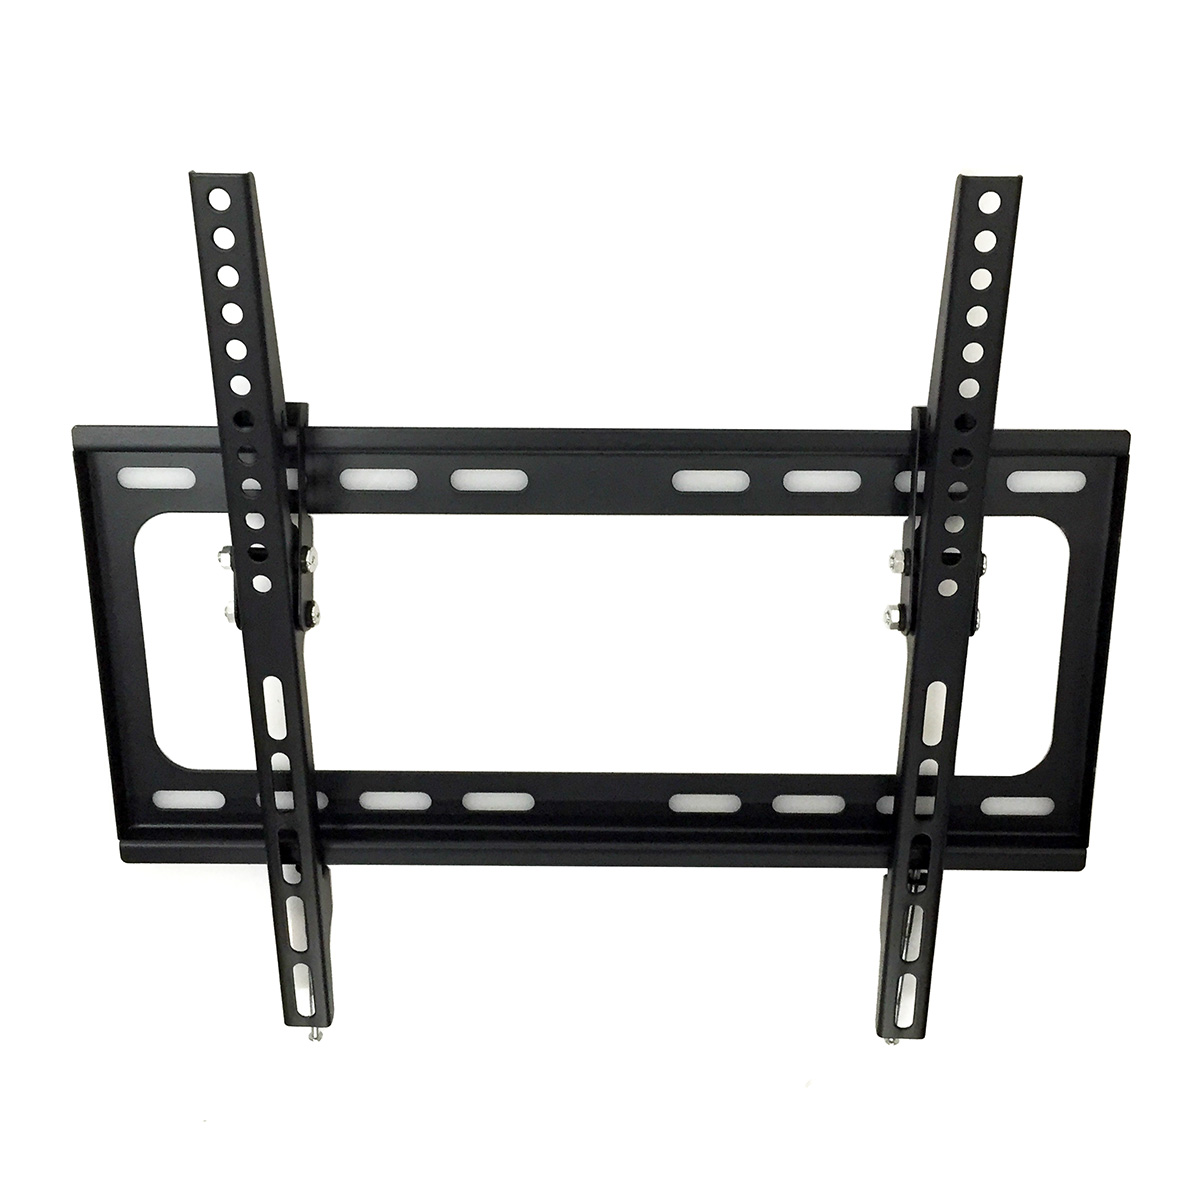 vizio lcd led tv tilt wall mount bracket for 22 30 37 40 42 46 47 50 55 inch ebay. Black Bedroom Furniture Sets. Home Design Ideas